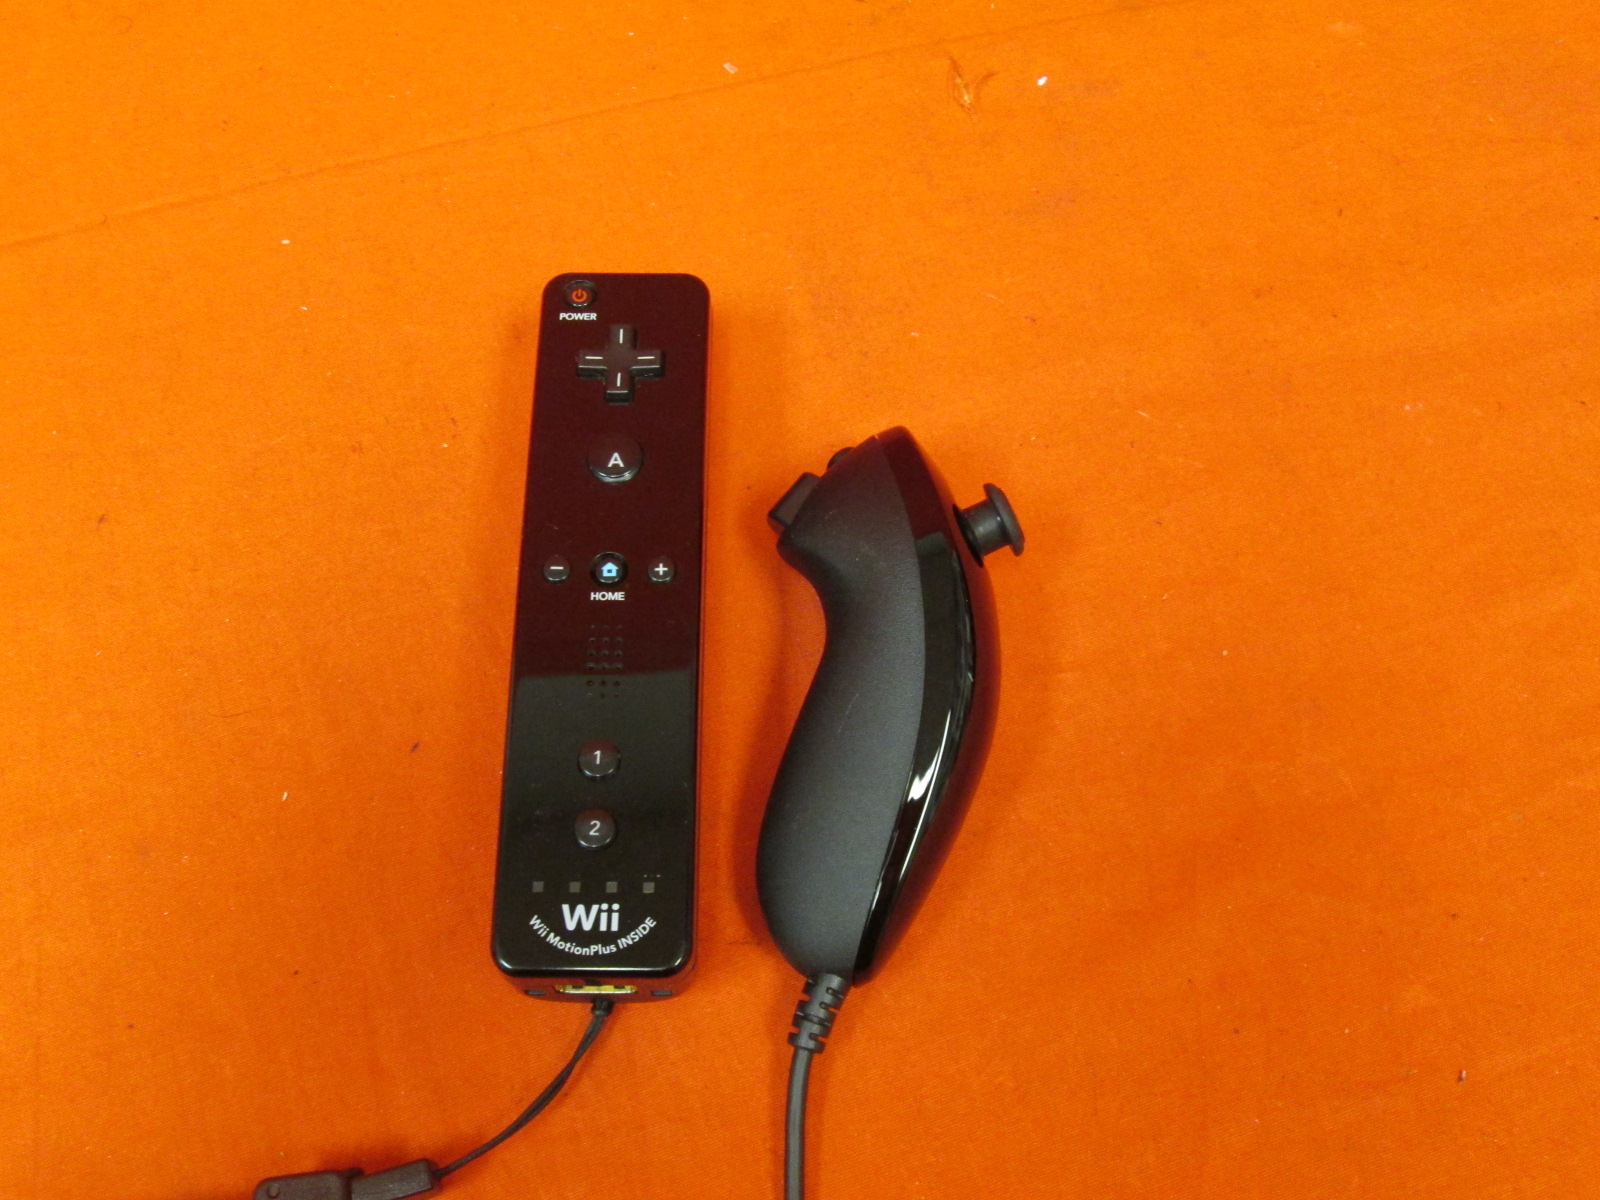 Motion Plus Remote And Nunchuck Controller For &Wii U-Black For Wii